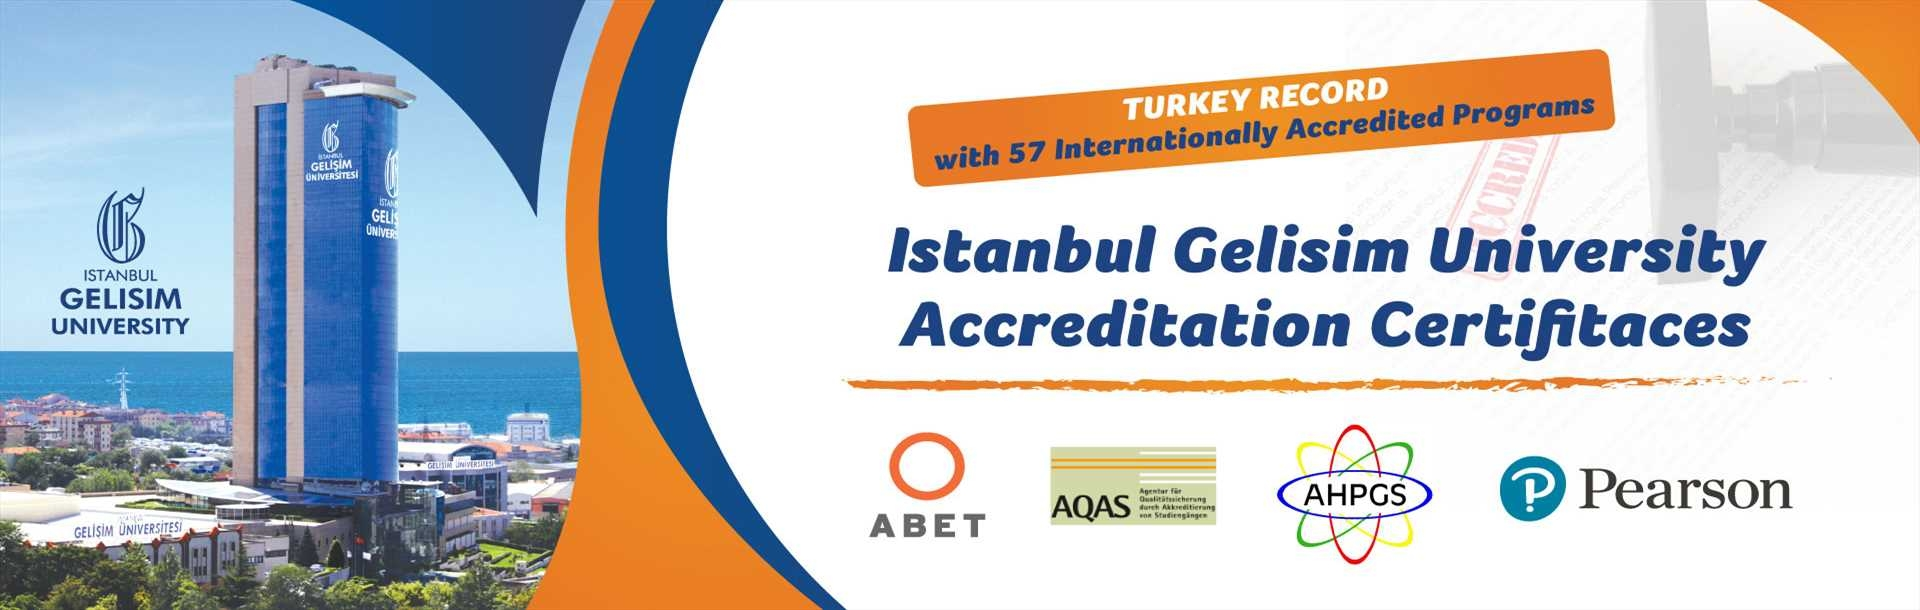 Accreditation Tour from Istanbul Gelisim University